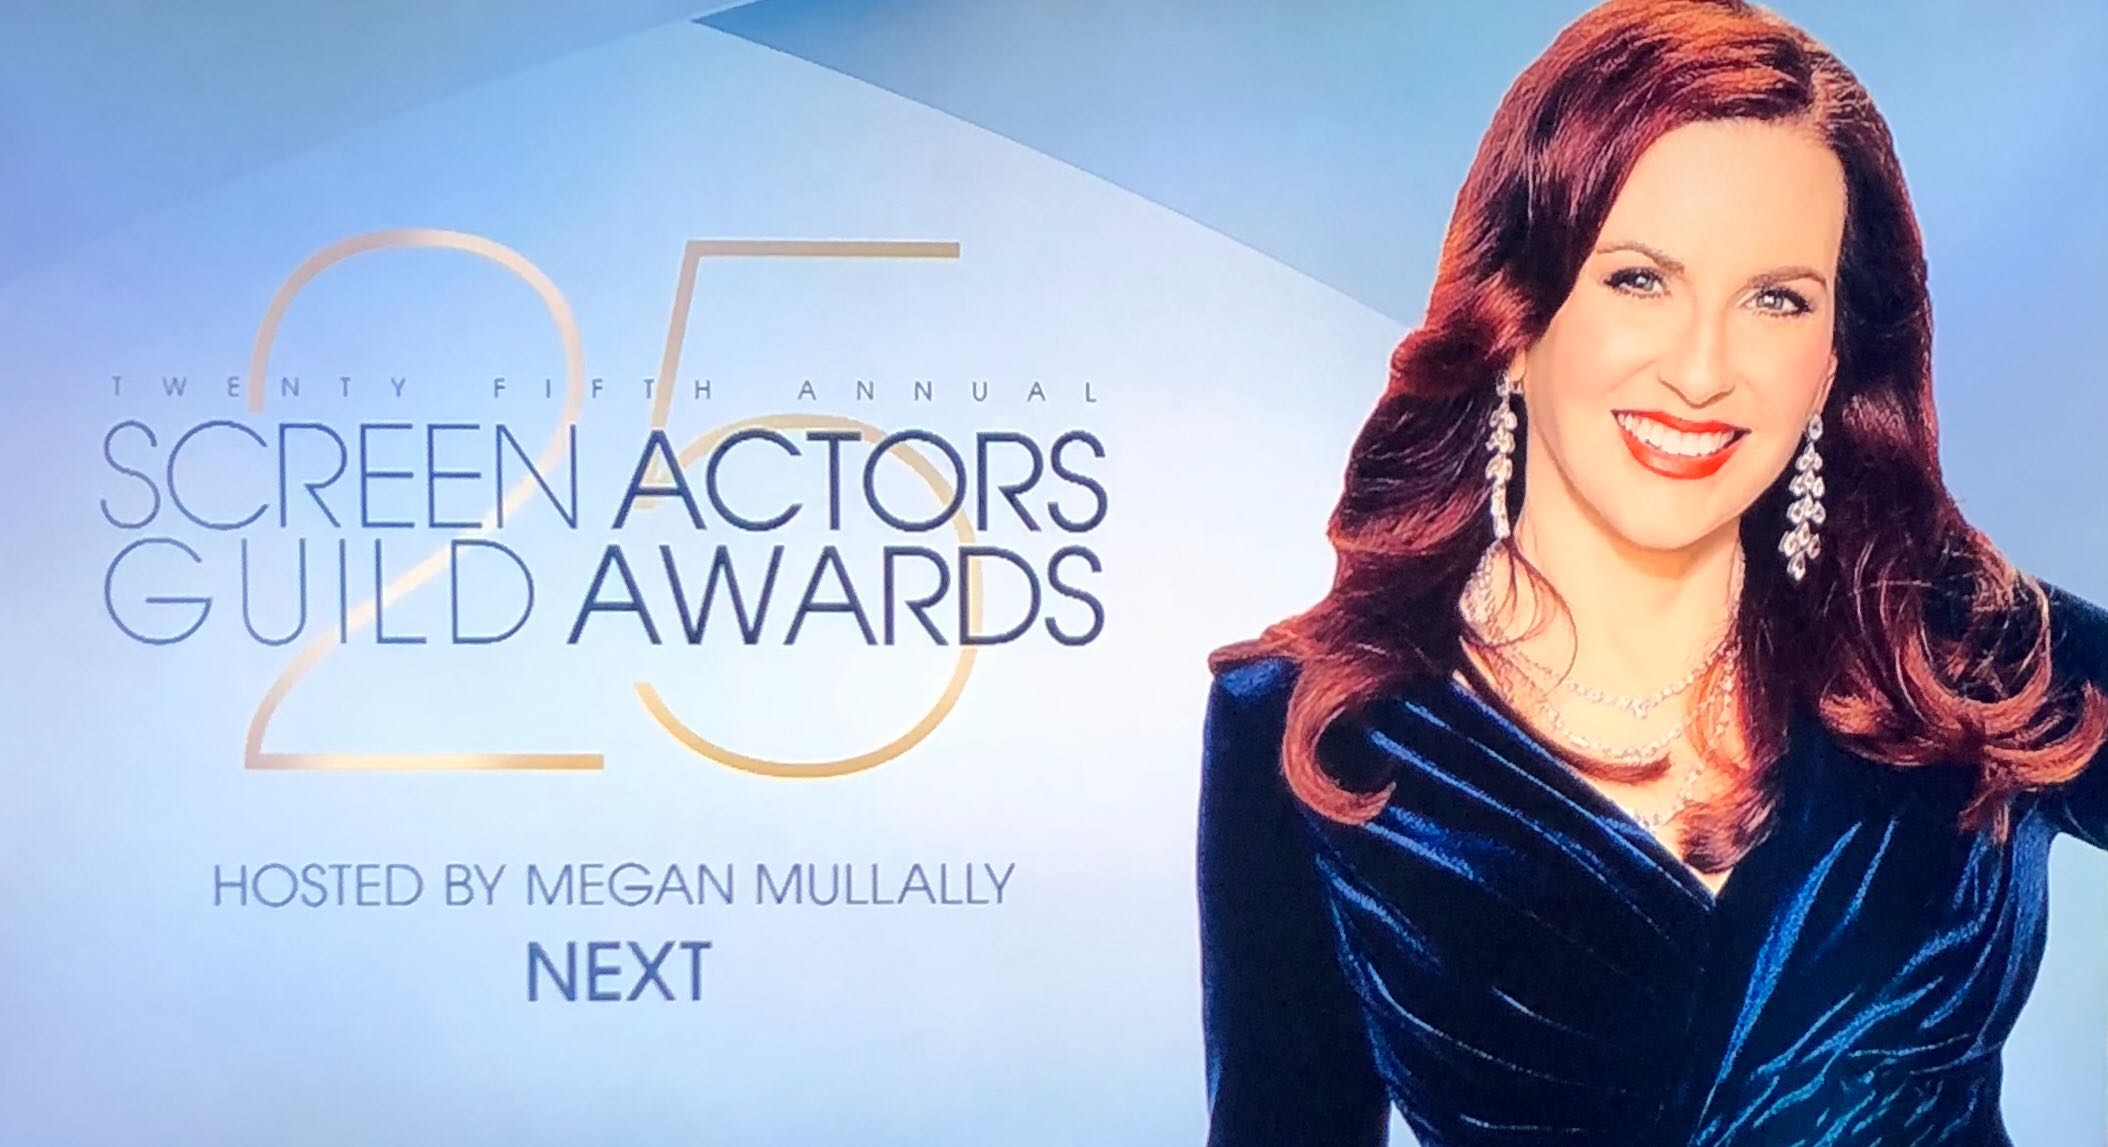 SAG Awards Megan Mullally